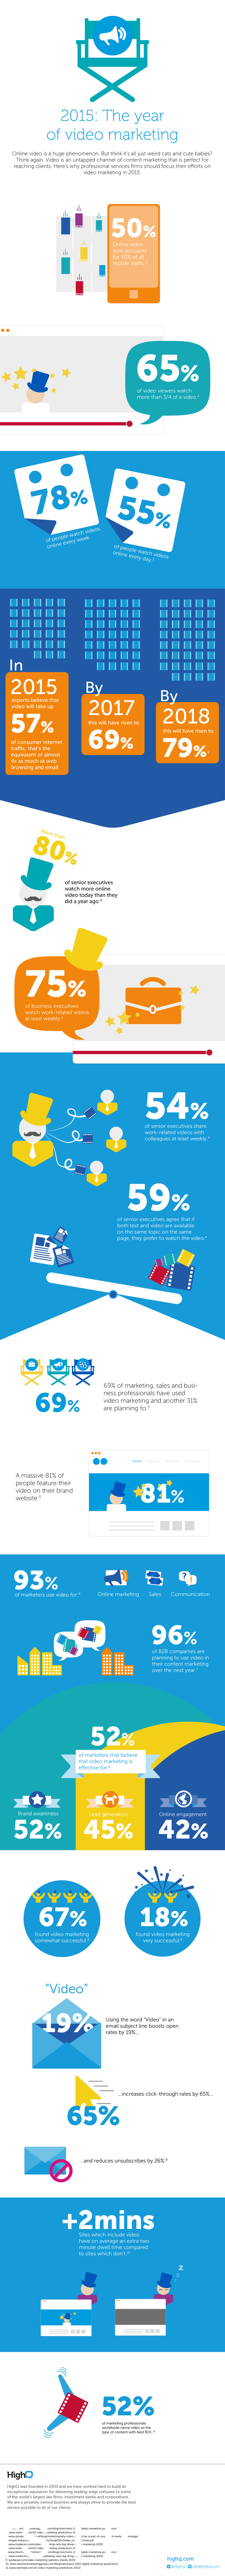 2015: The Year of Video Marketing #infographic #Marketing #VideoMarketing